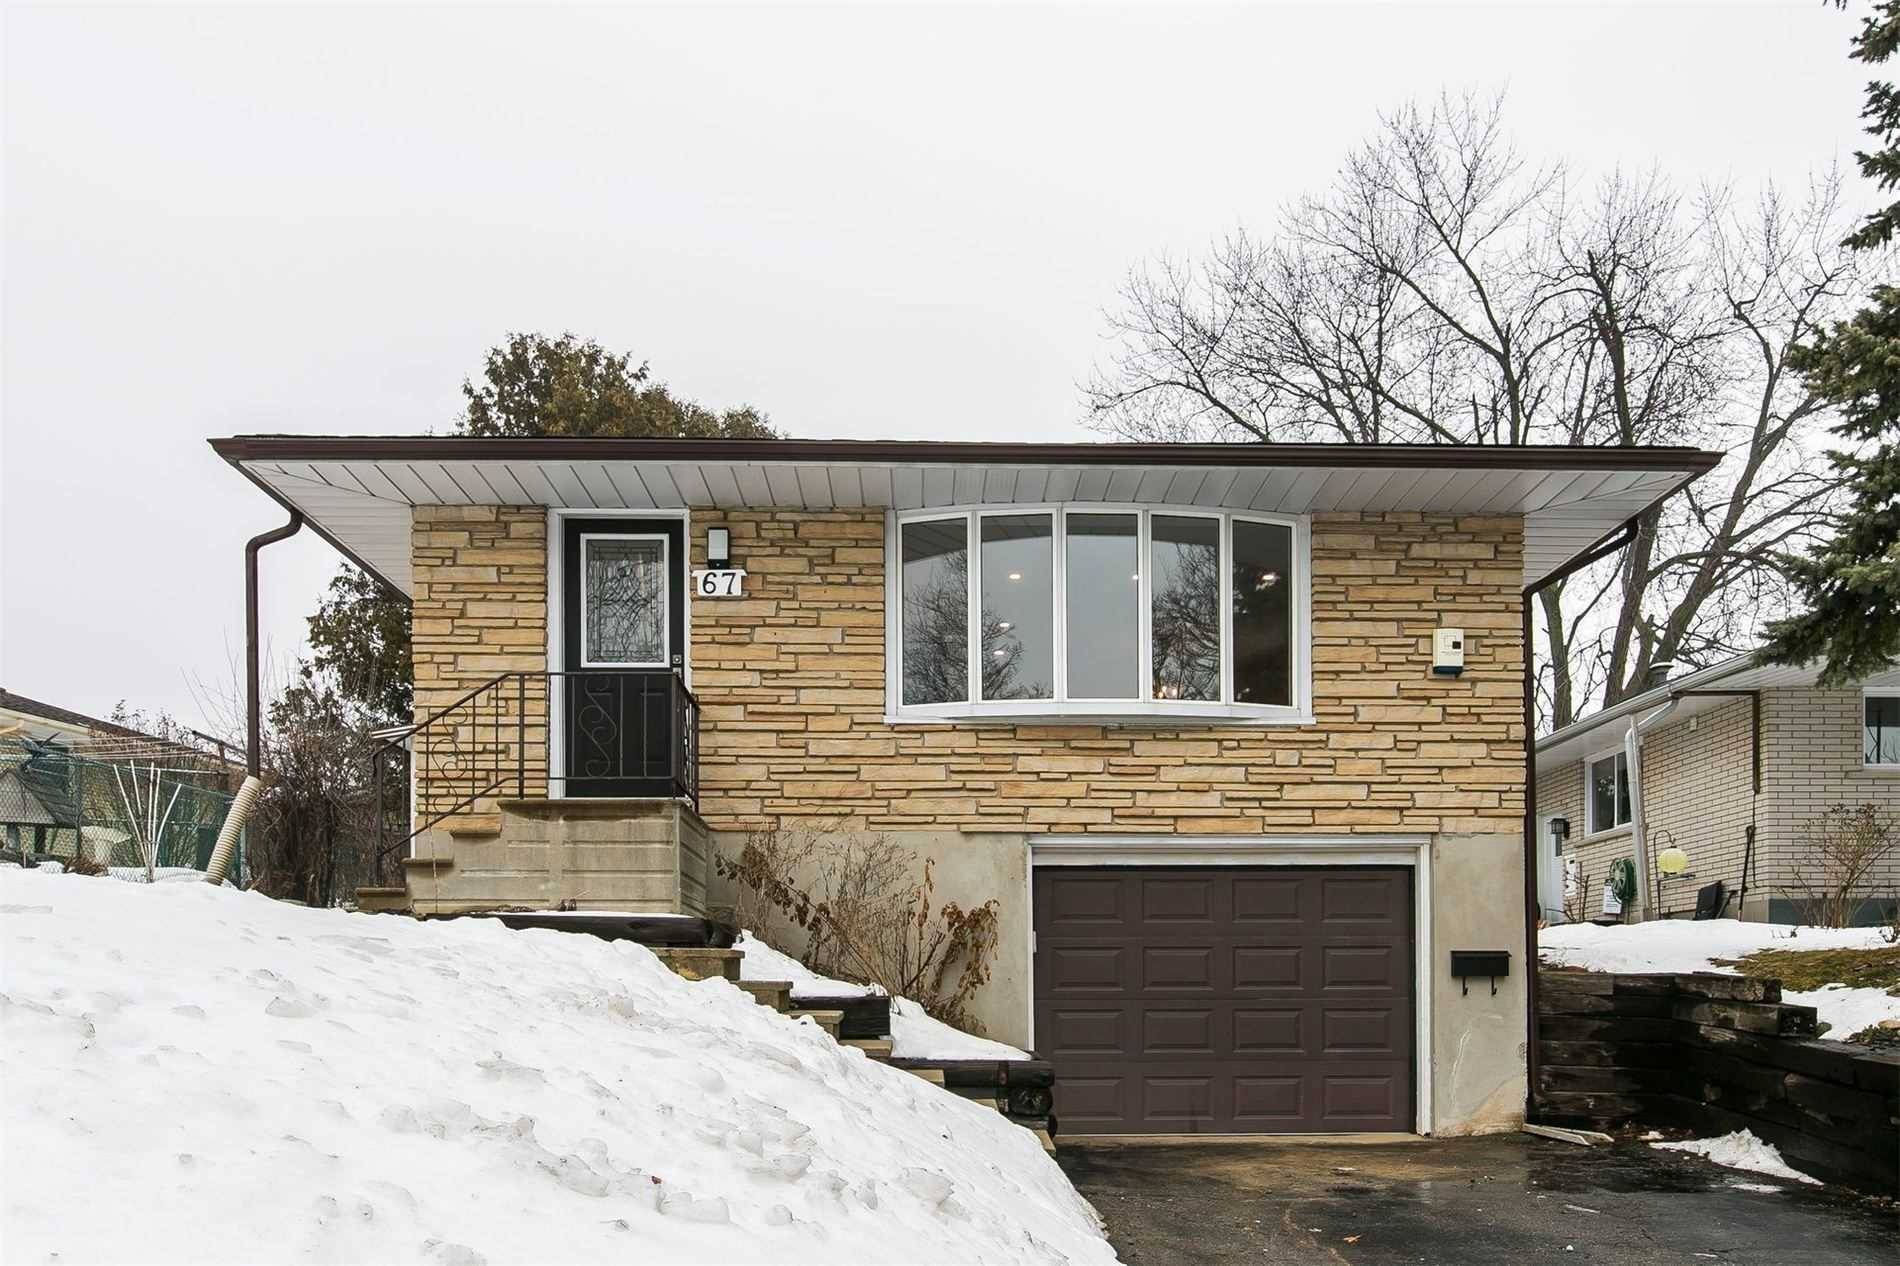 House for sale at 67 Pinedale Dr Kitchener Ontario - MLS: X4718485